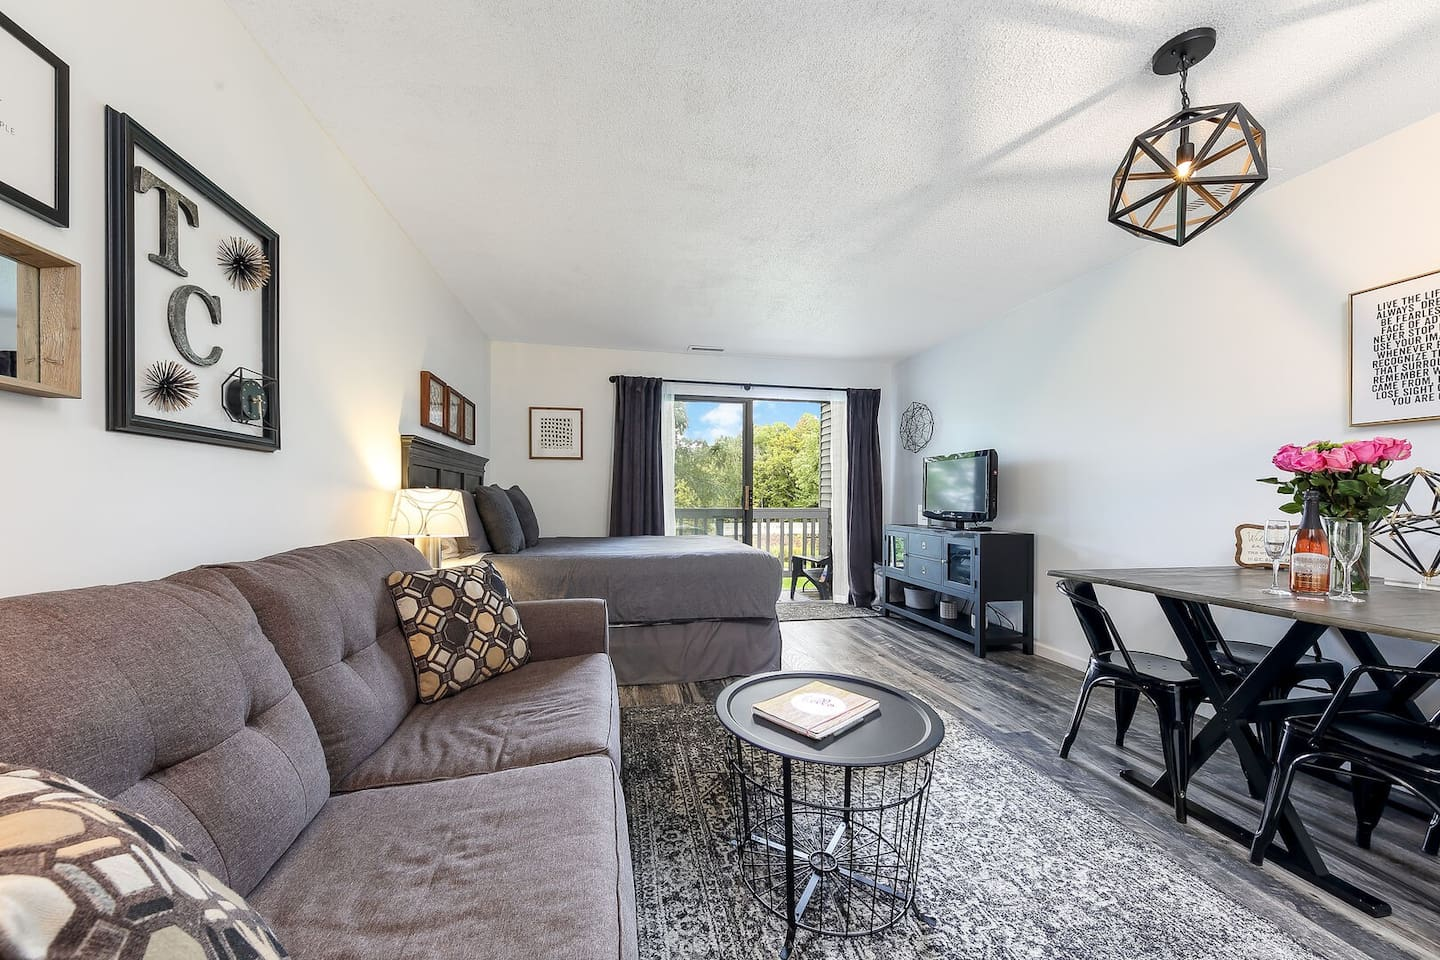 This beautifully furnished studio has everything you'll need to enjoy comfort and style!